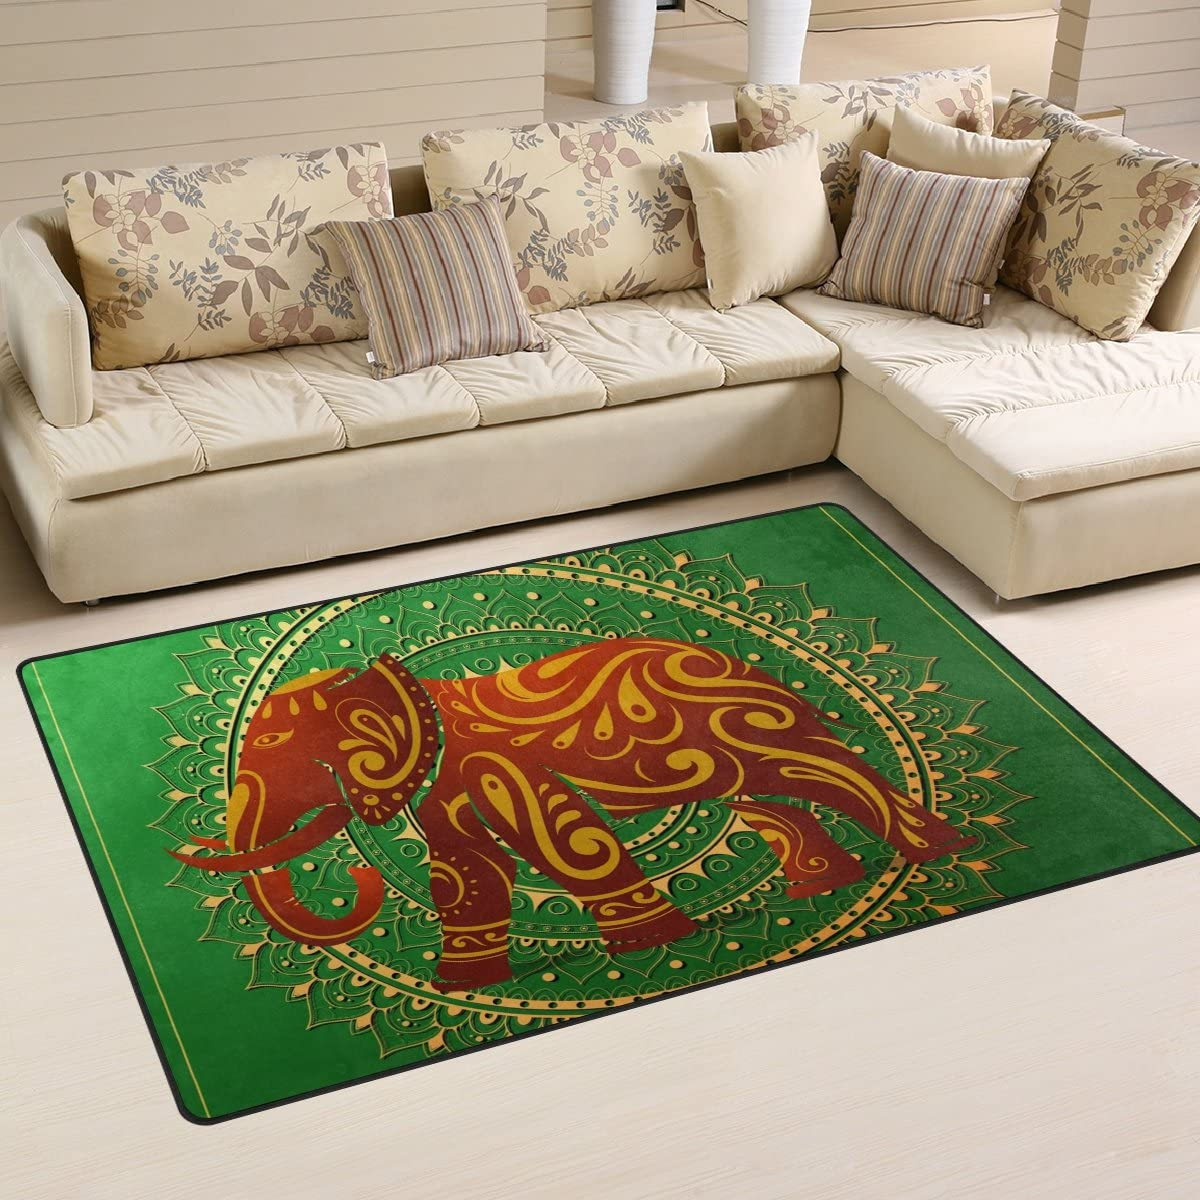 Sunlome Elephant with Orient Ornament Pattern Area Rug Rugs Non-Slip Indoor Outdoor Floor Mat Doormats for Home Decor 60 x 39 inches